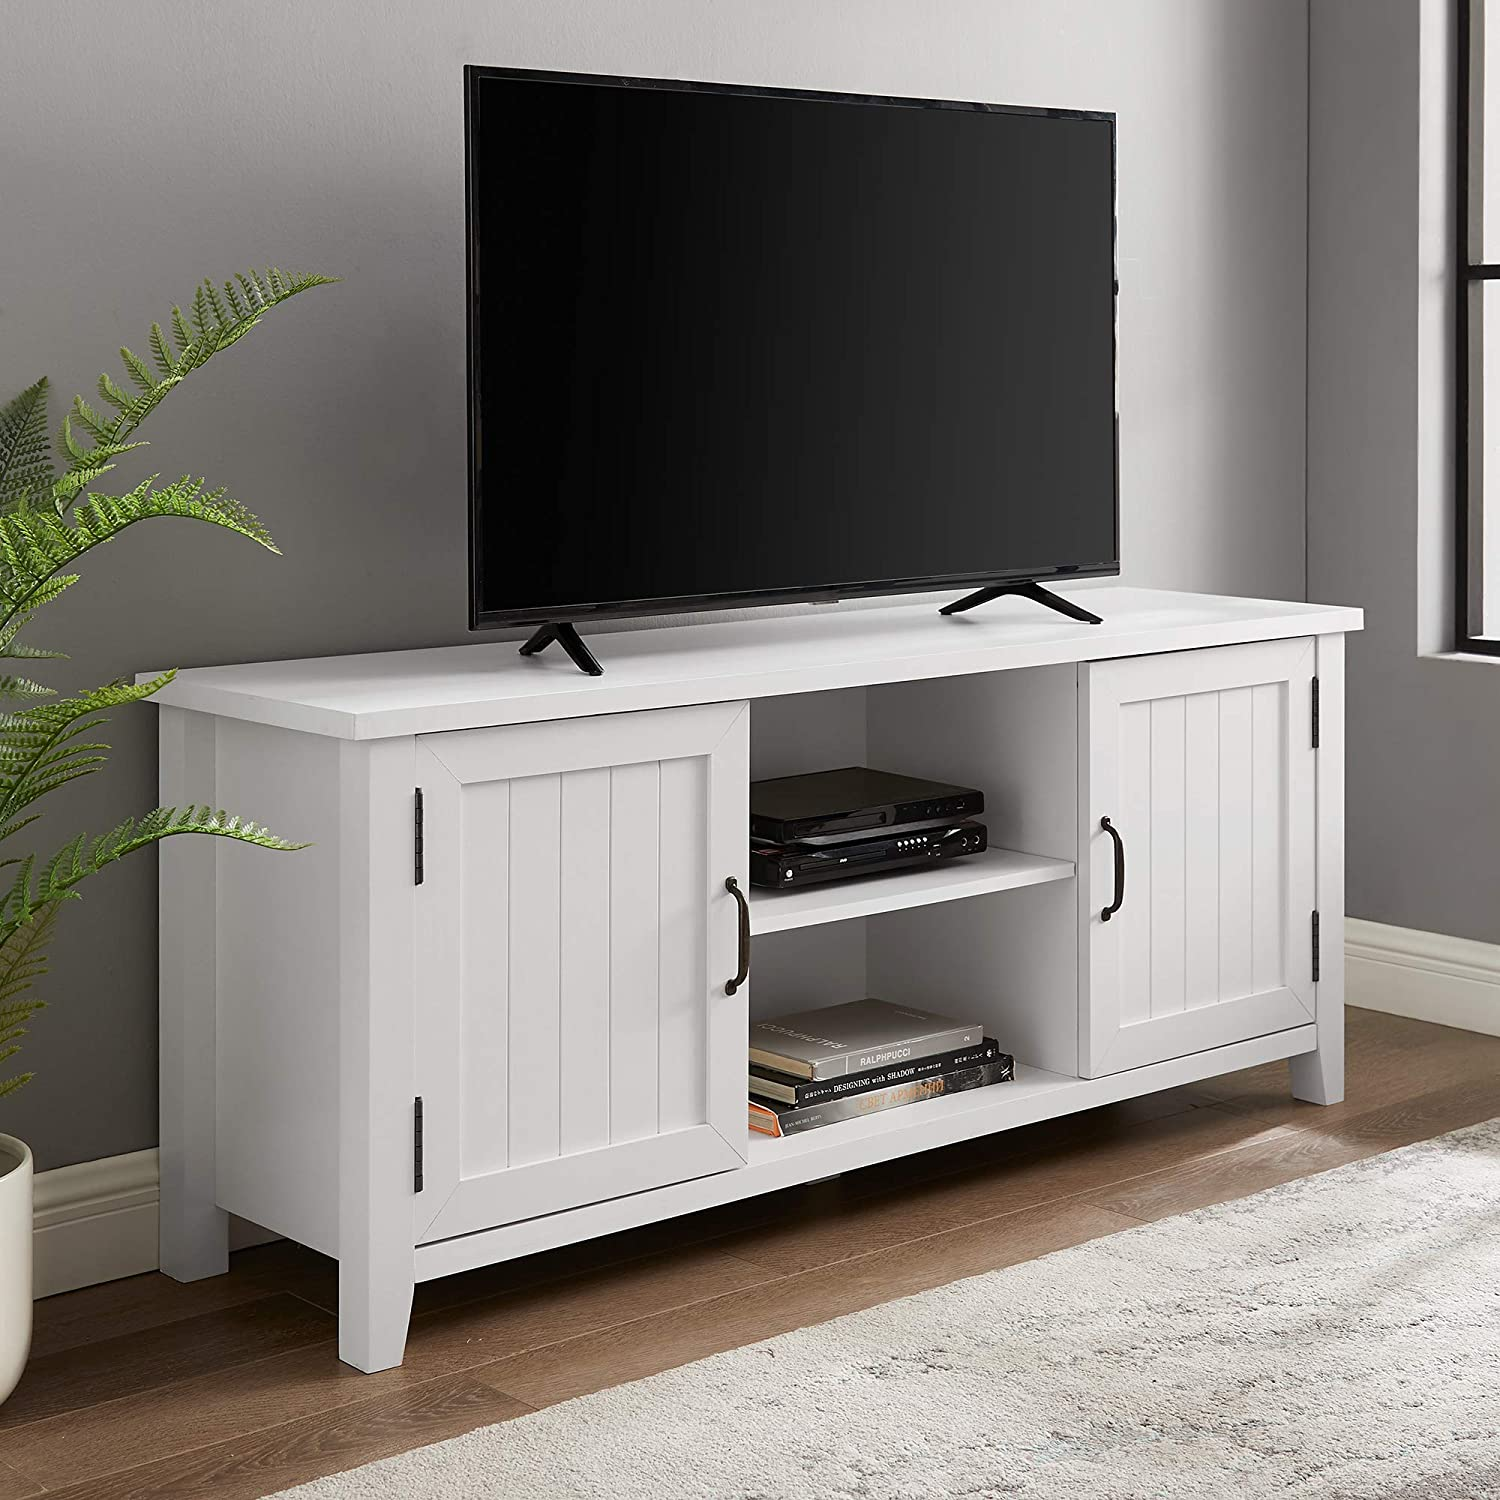 "Walker Edison Modern Farmhouse Grooved Wood Stand with Cabinet Doors 65"" Flat Screen Universal TV Console Living Room Storage Shelves Entertainment Center, 58 Inch, White"